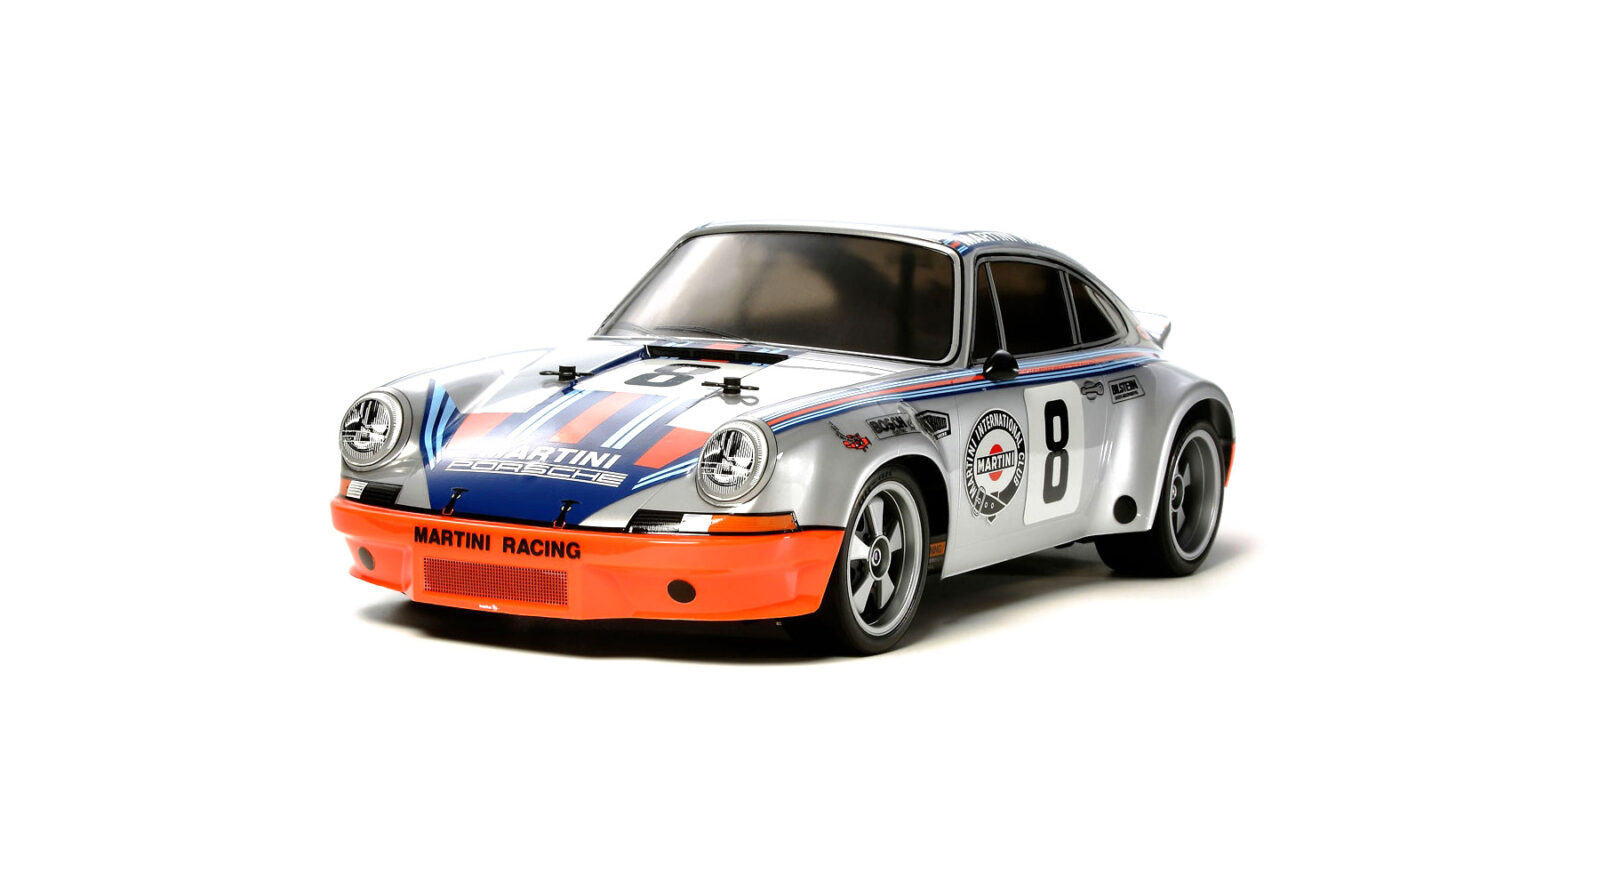 1:10th Scale Porsche 911 Carrera RSR Tamiya R/C Car